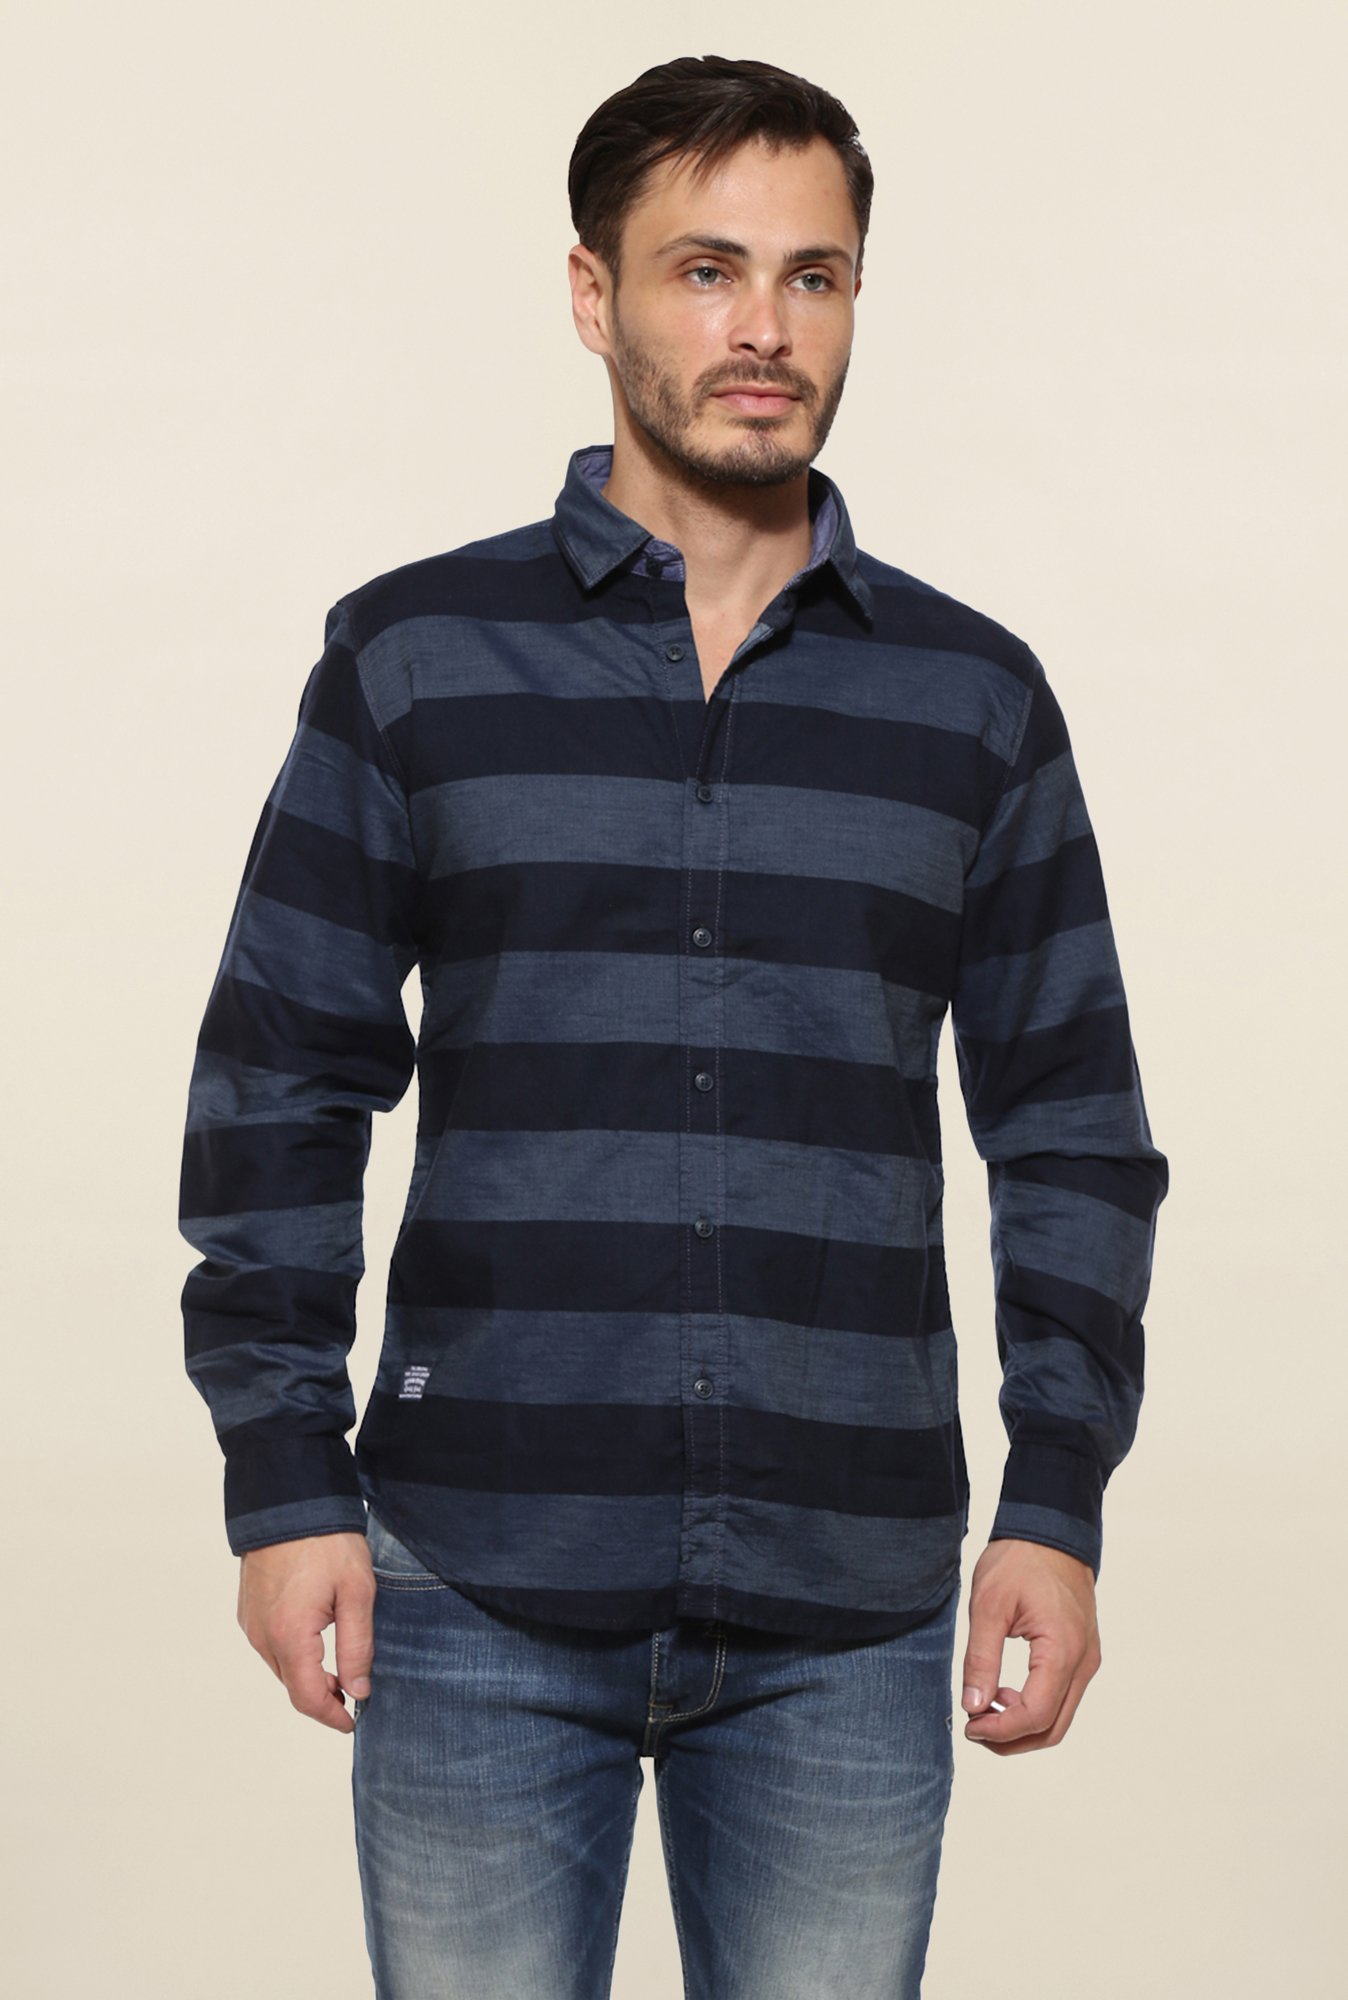 Pepe Jeans Navy Striped Casual Shirt